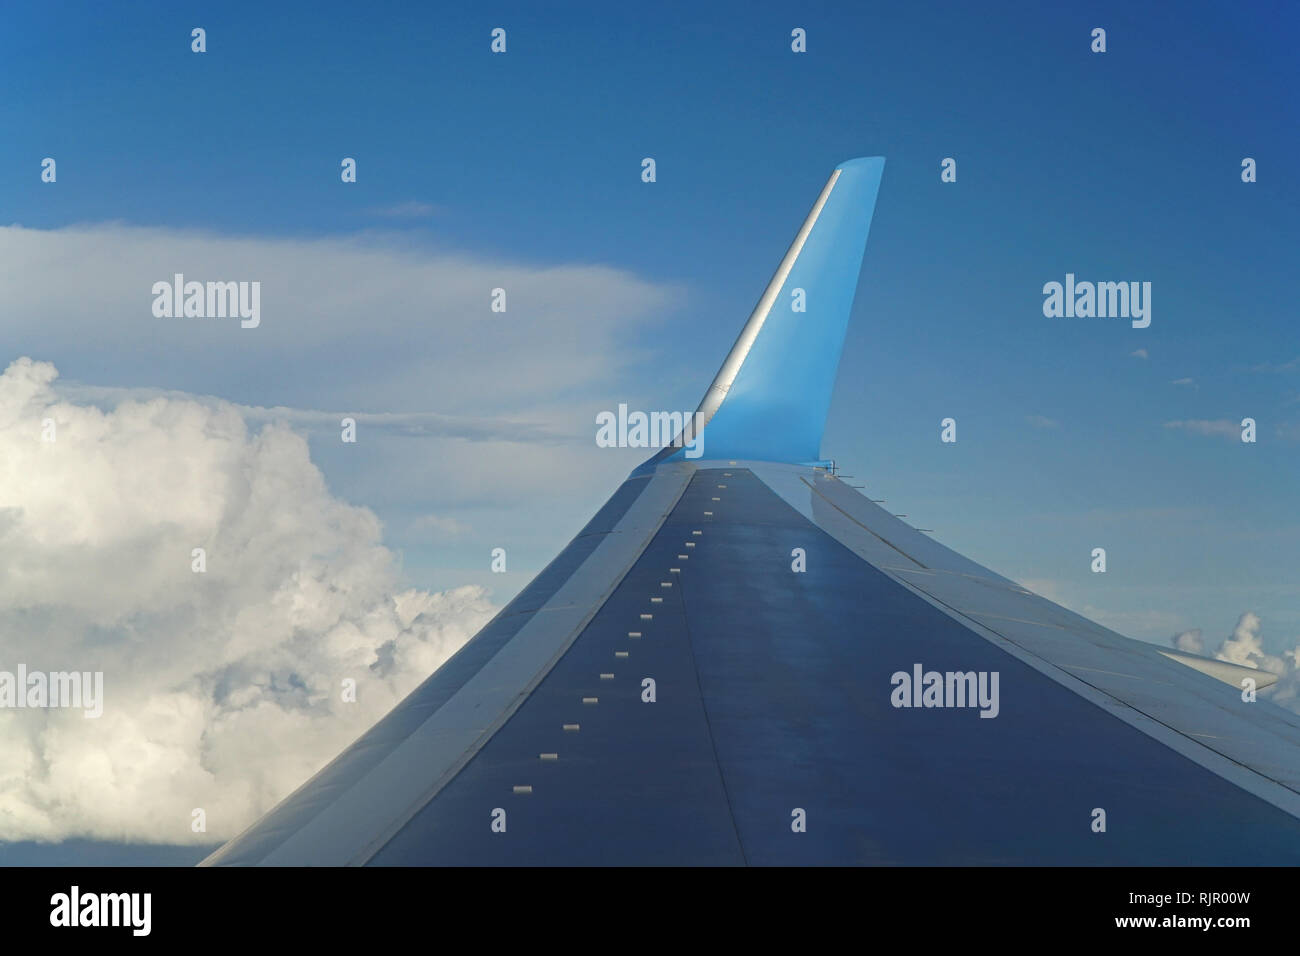 View of the wing of an aircraft in flight against a blue sky - Stock Image